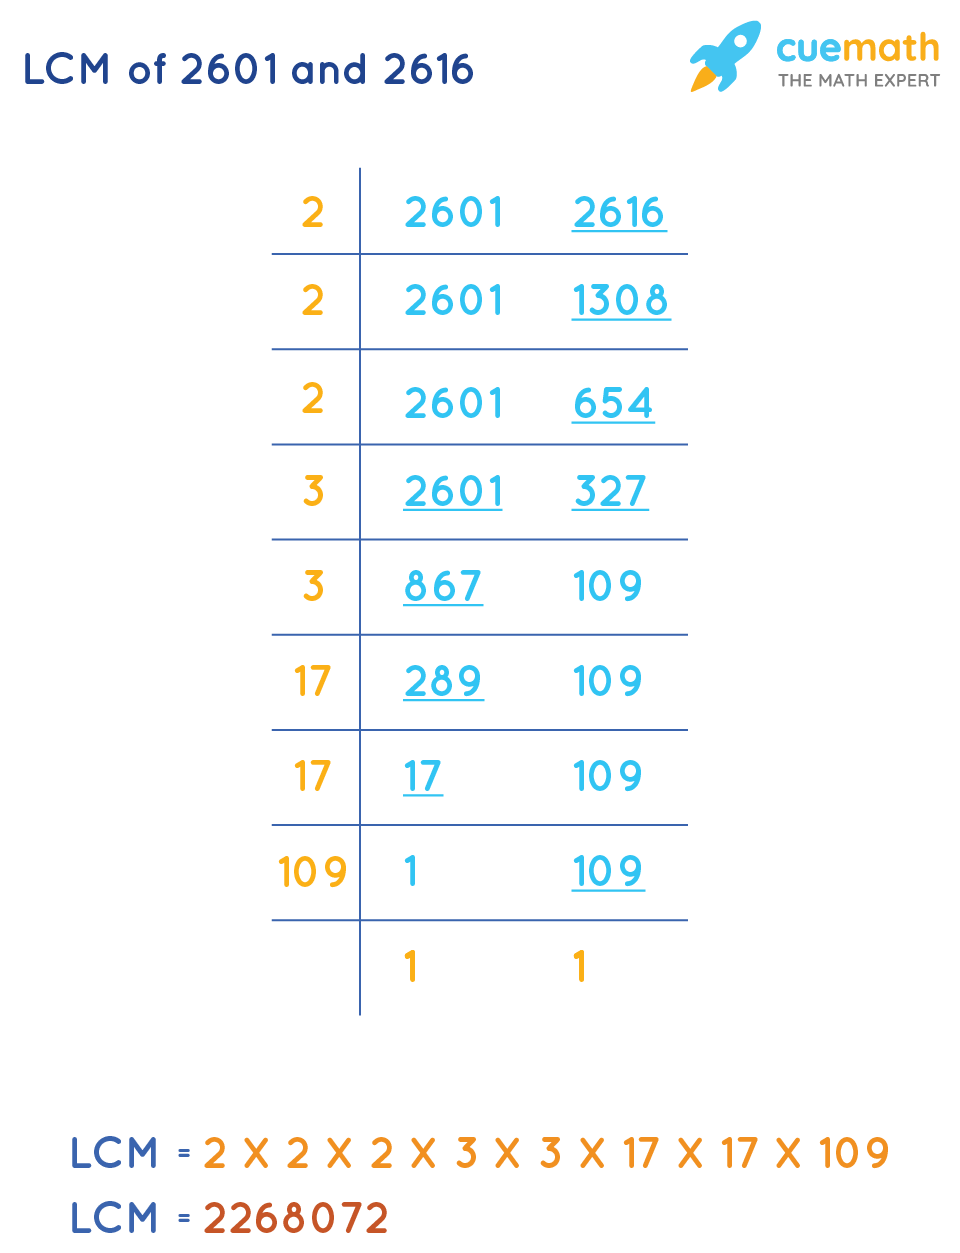 LCM of 2601 and 2616 by Common Division Method